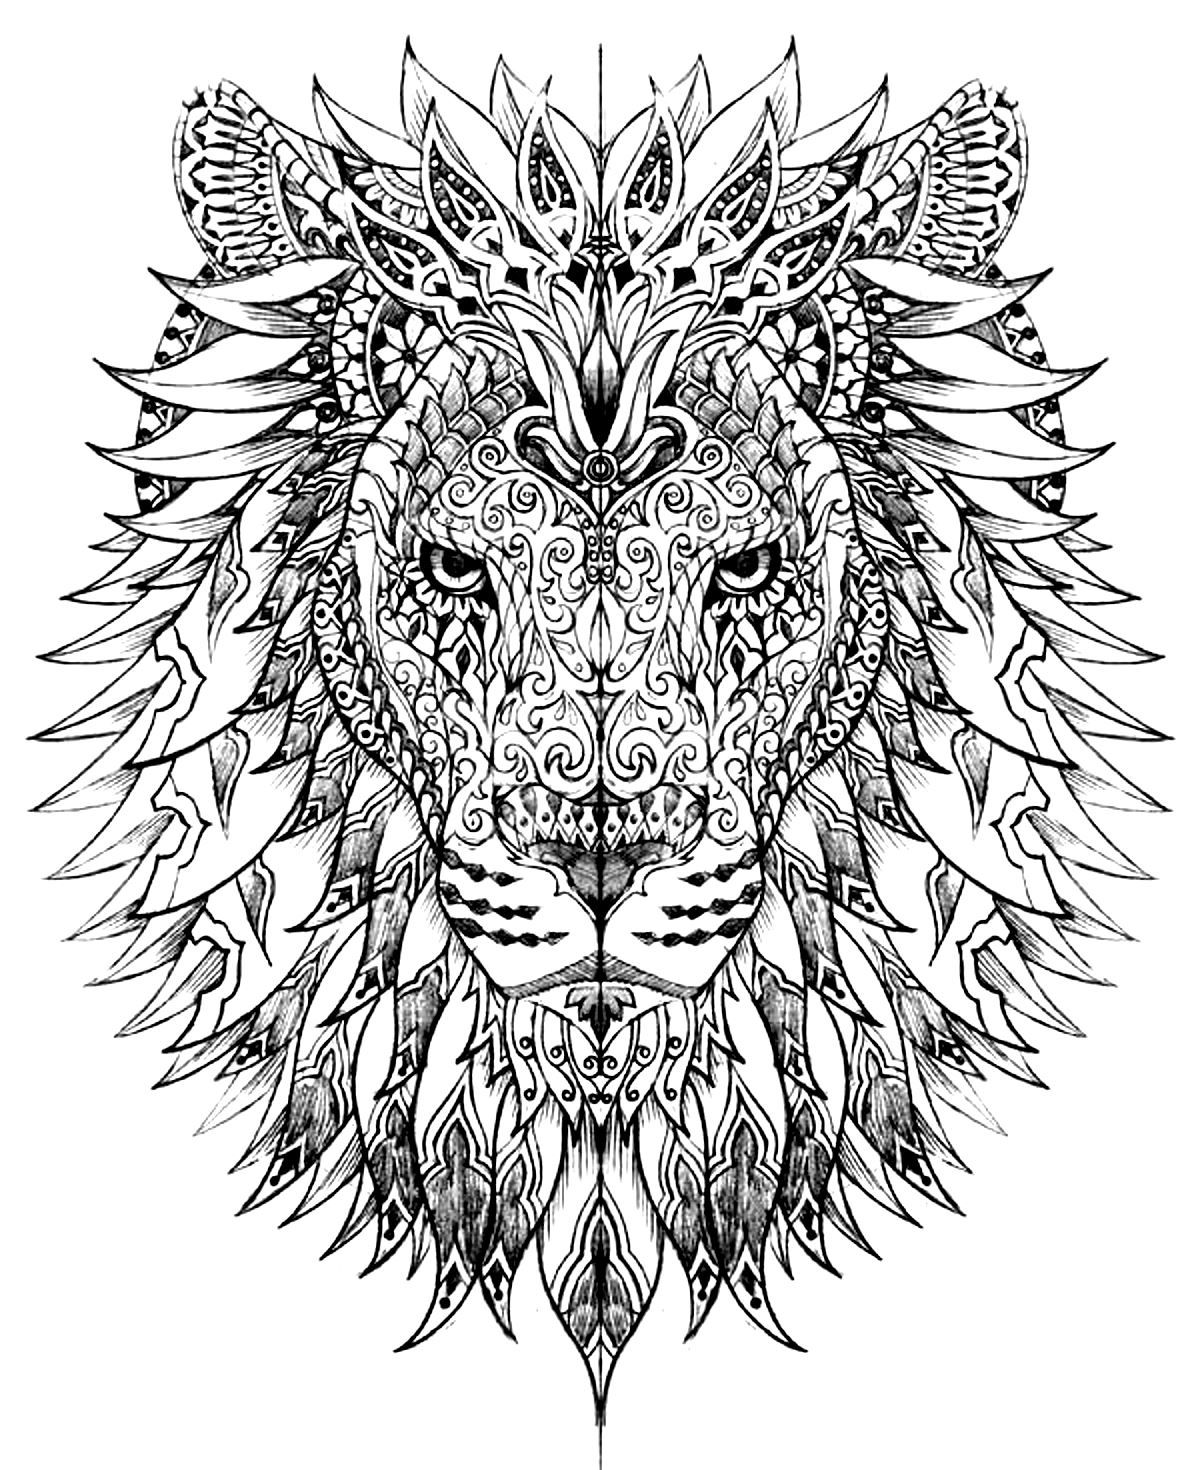 1200x1470 Free Coloring Pages Printables Lions, Adult Coloring And Fun